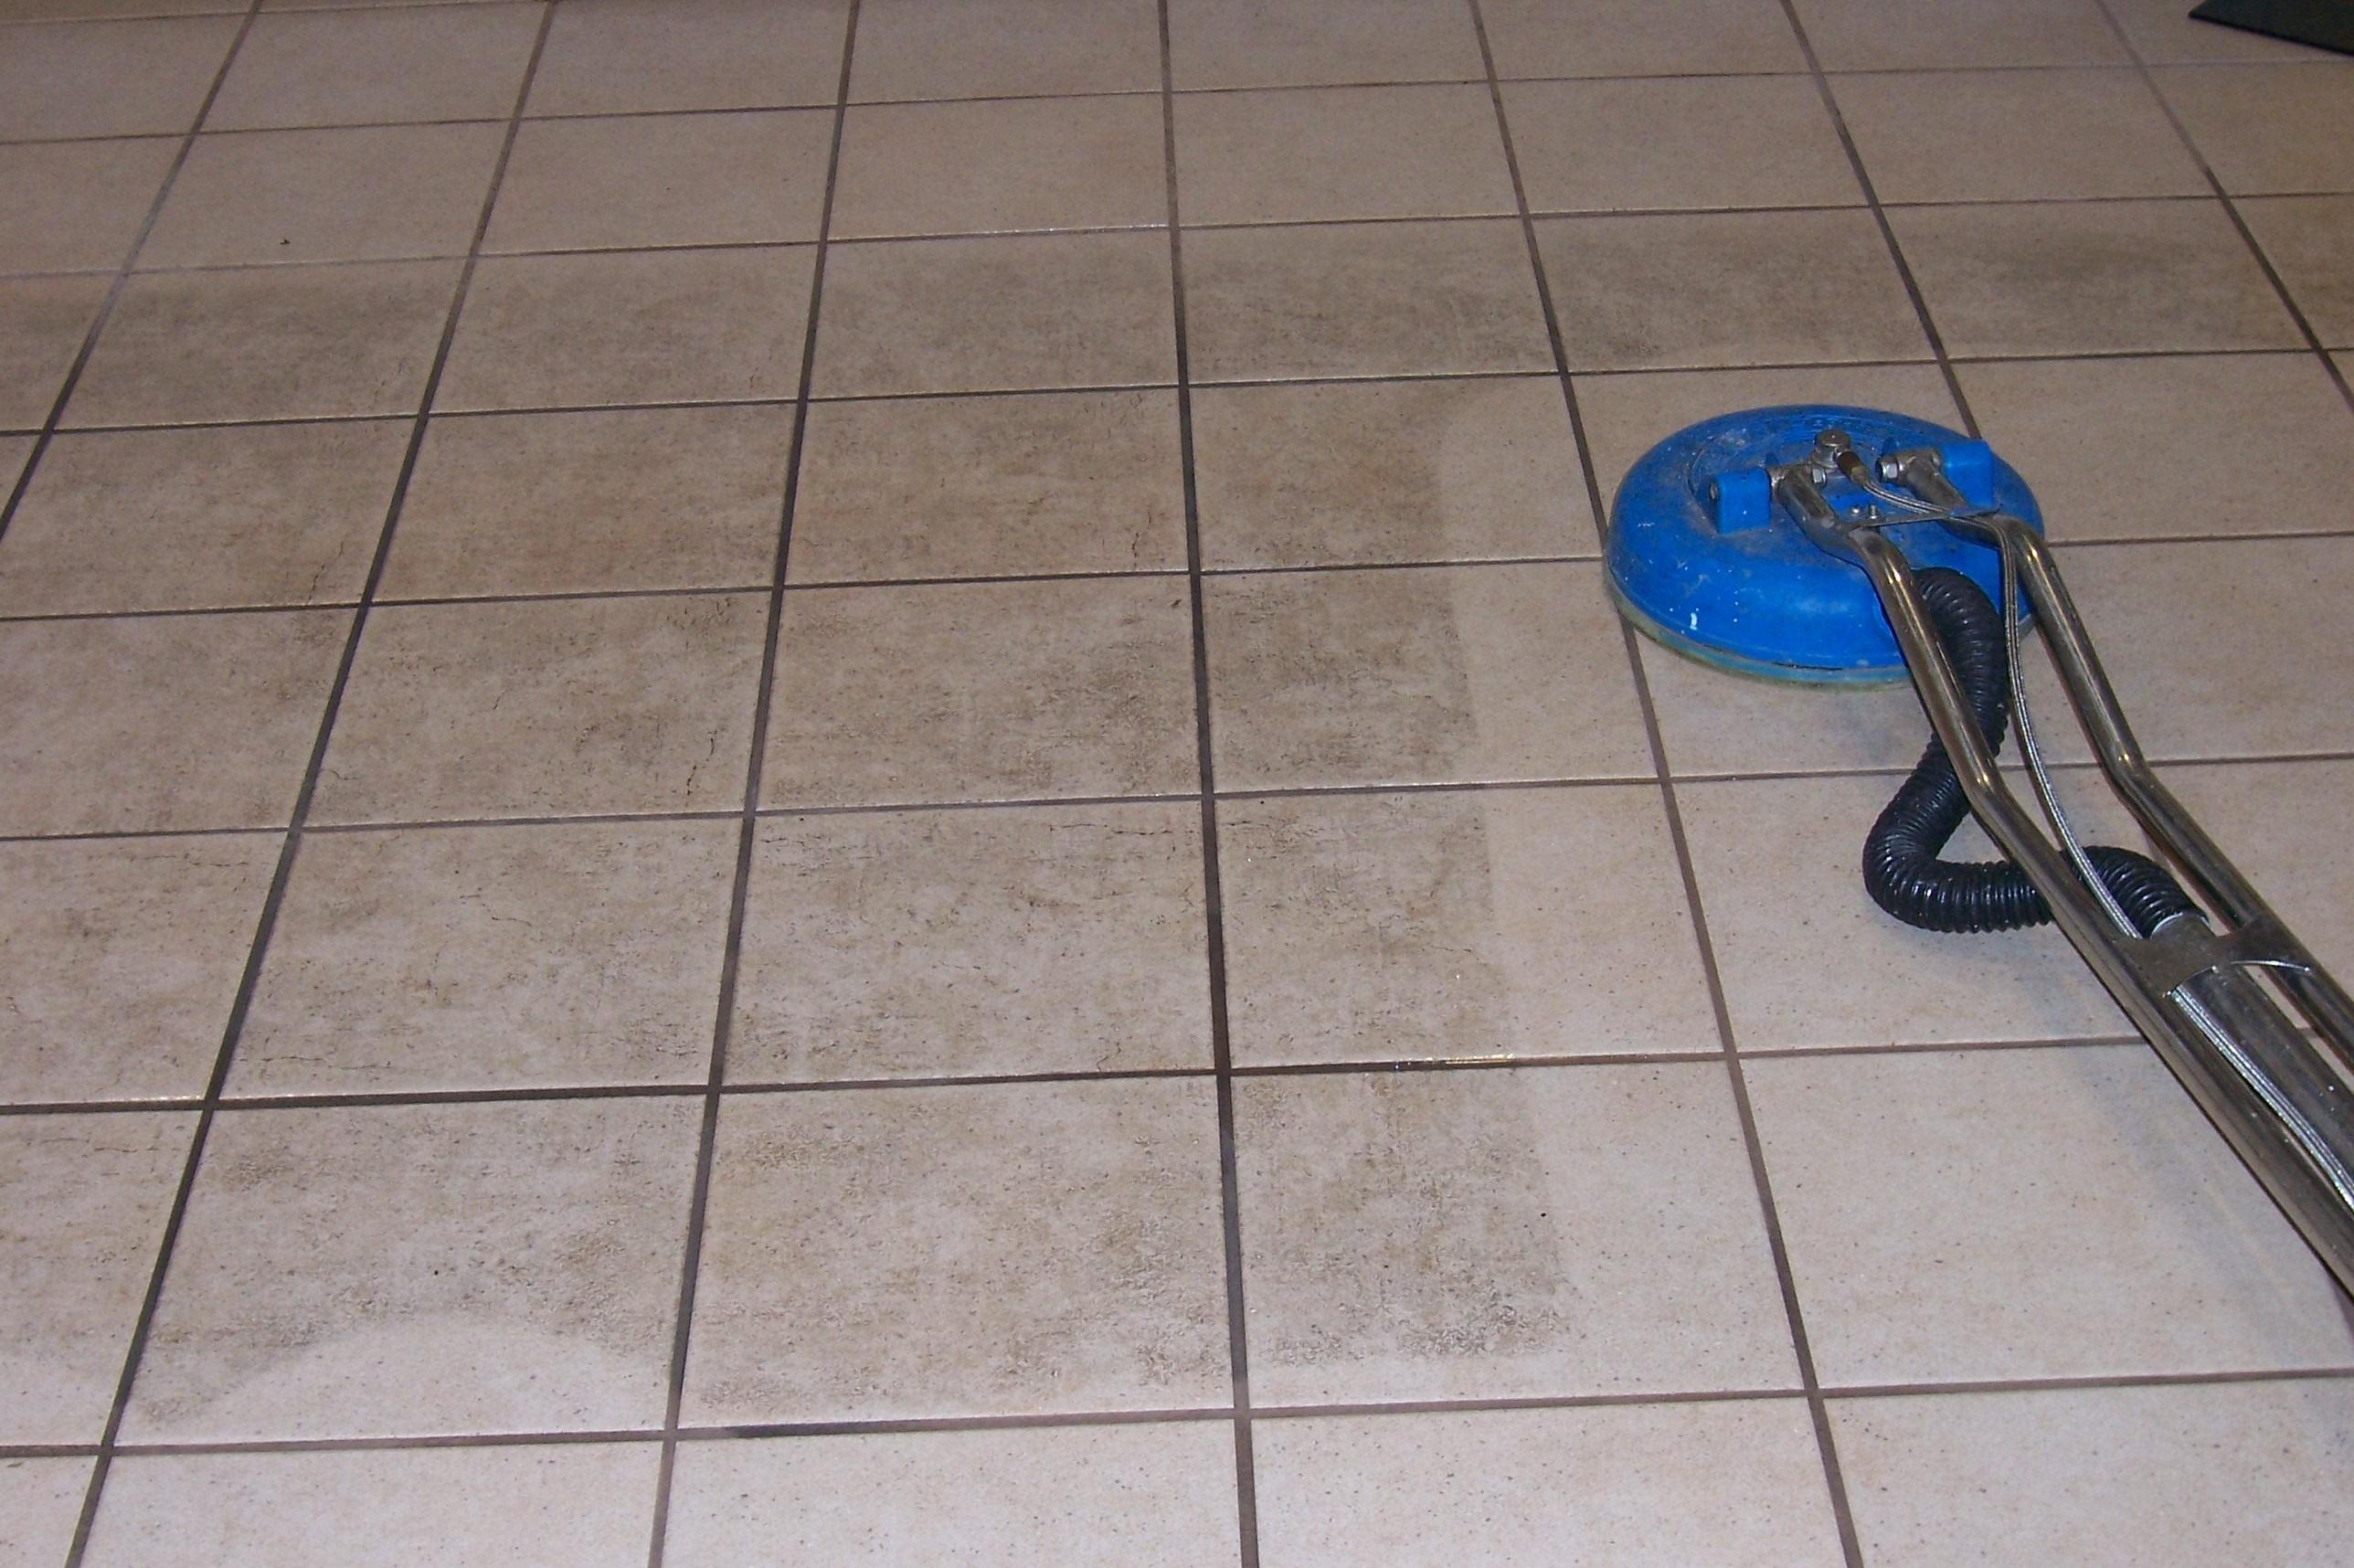 Why Need Help Tile Grout Cleaning Services